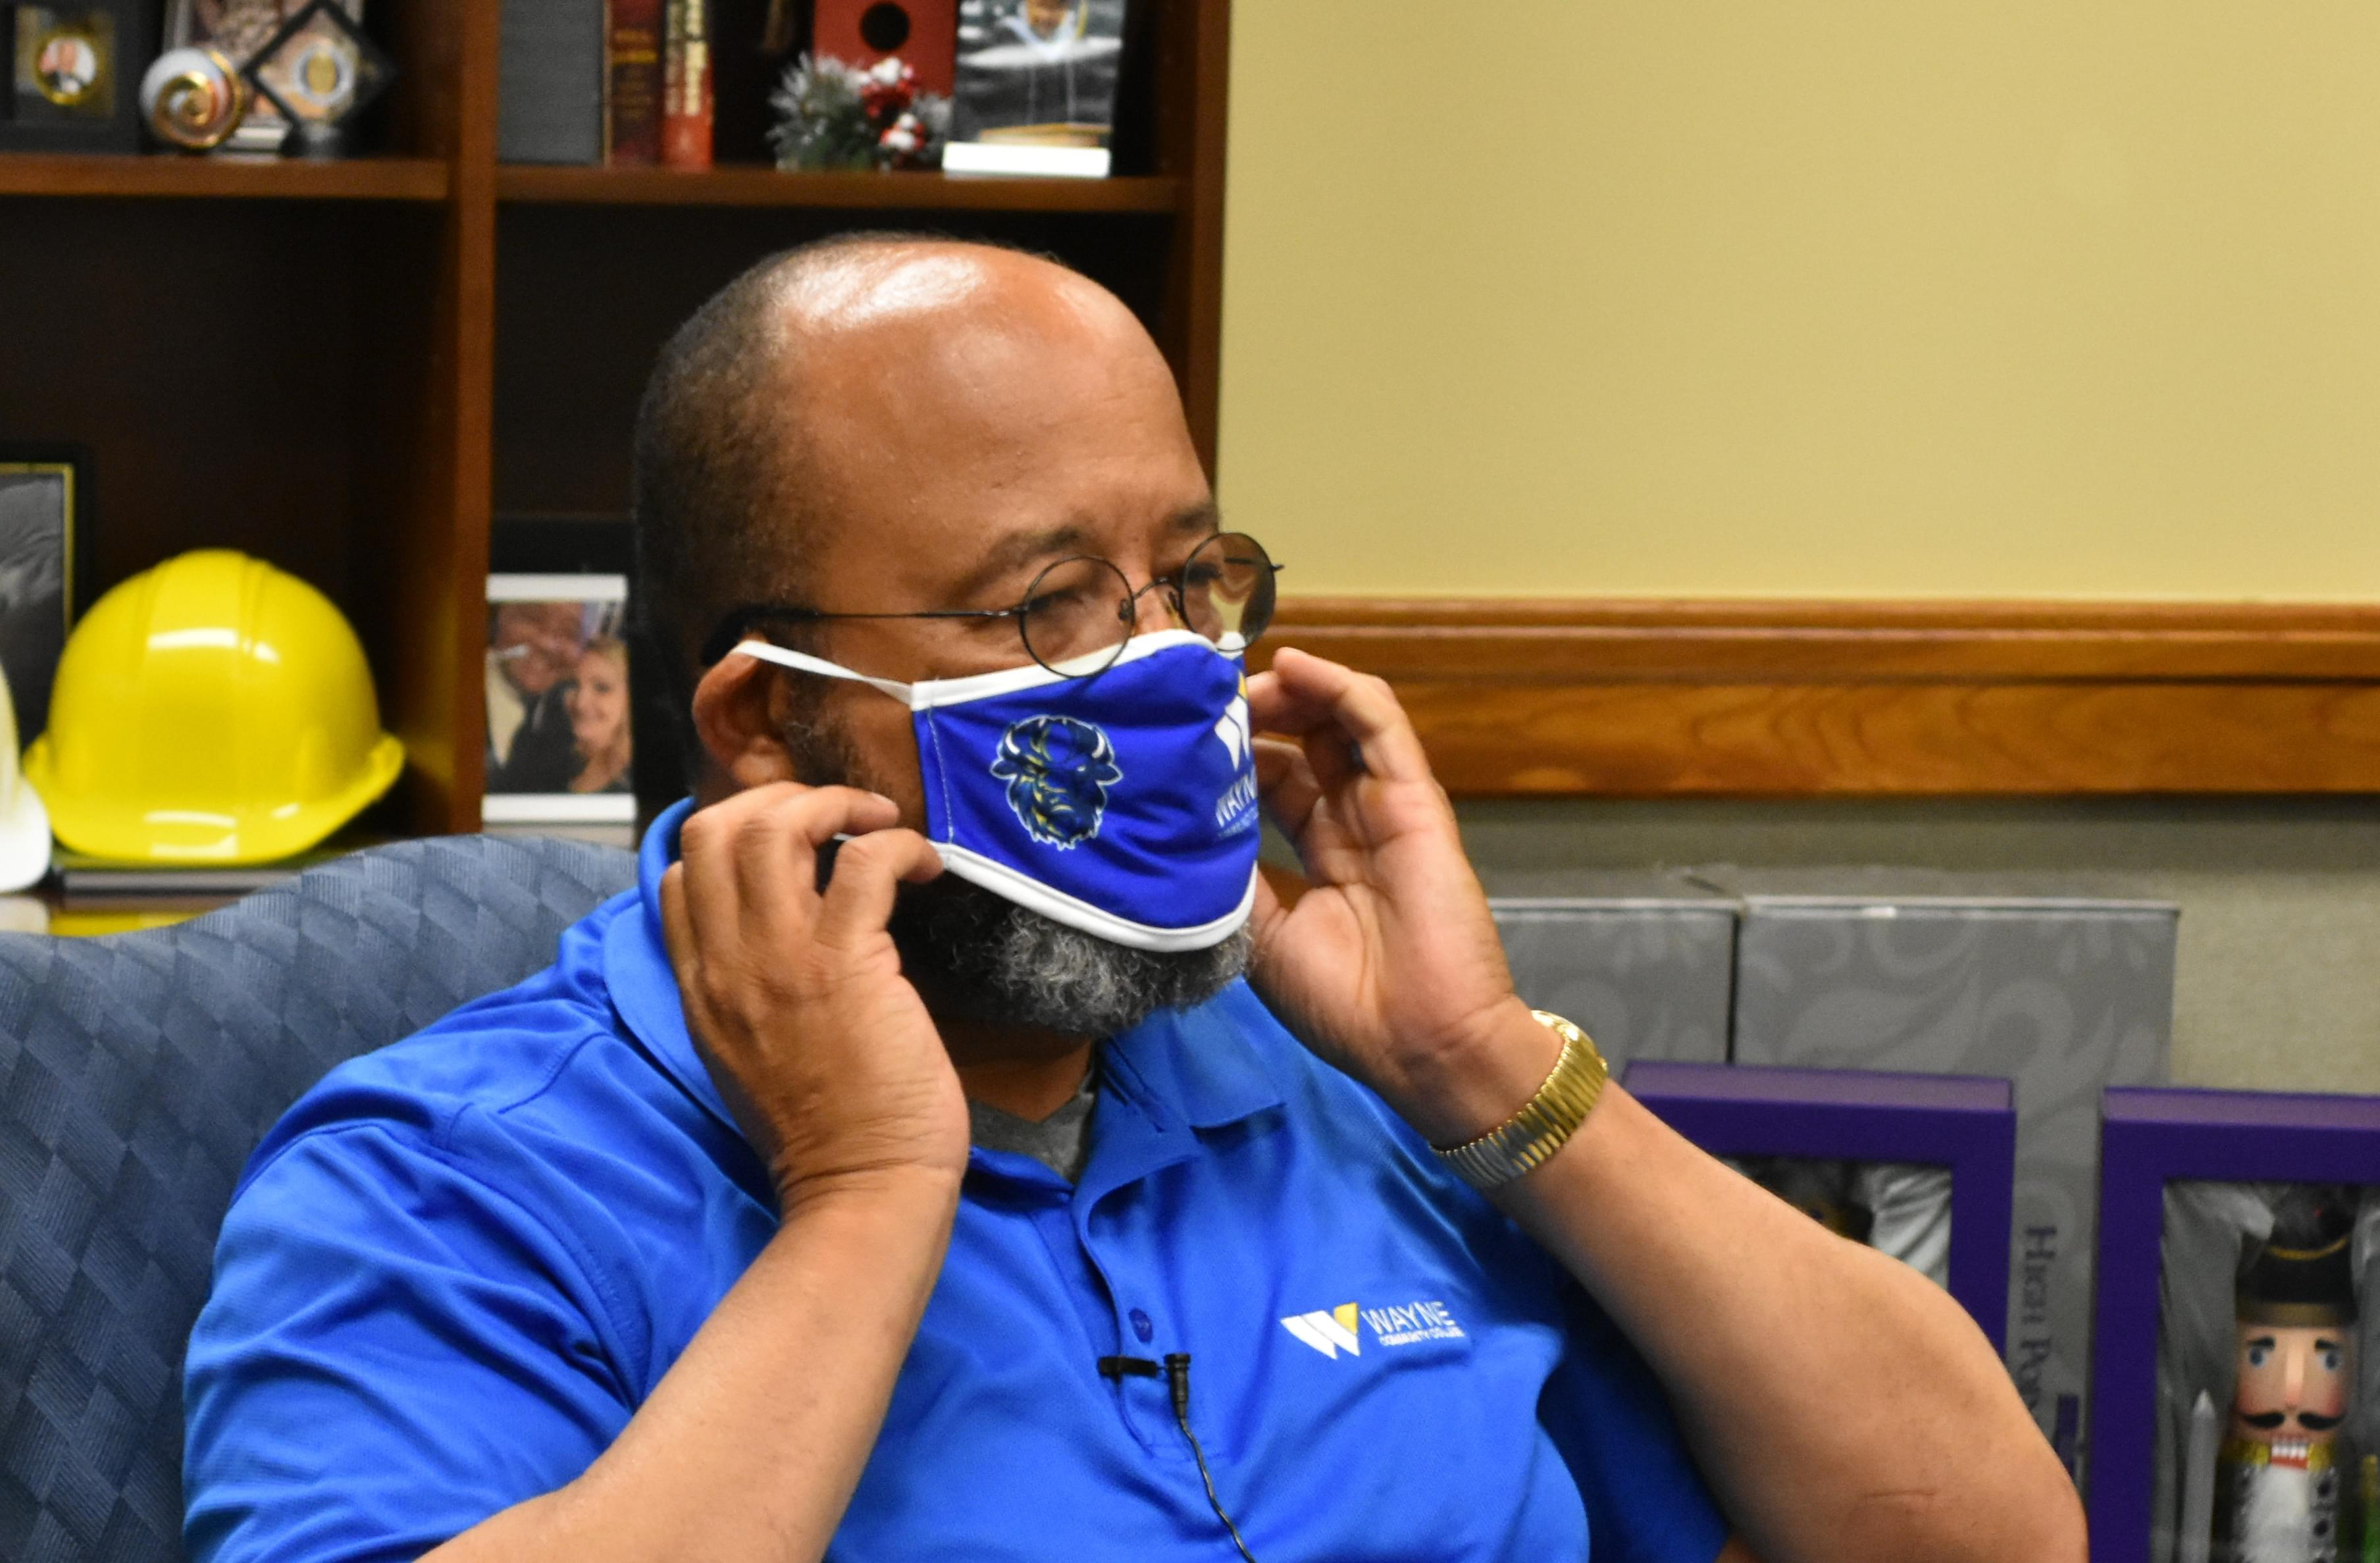 Wayne Community College Requiring Face Coverings